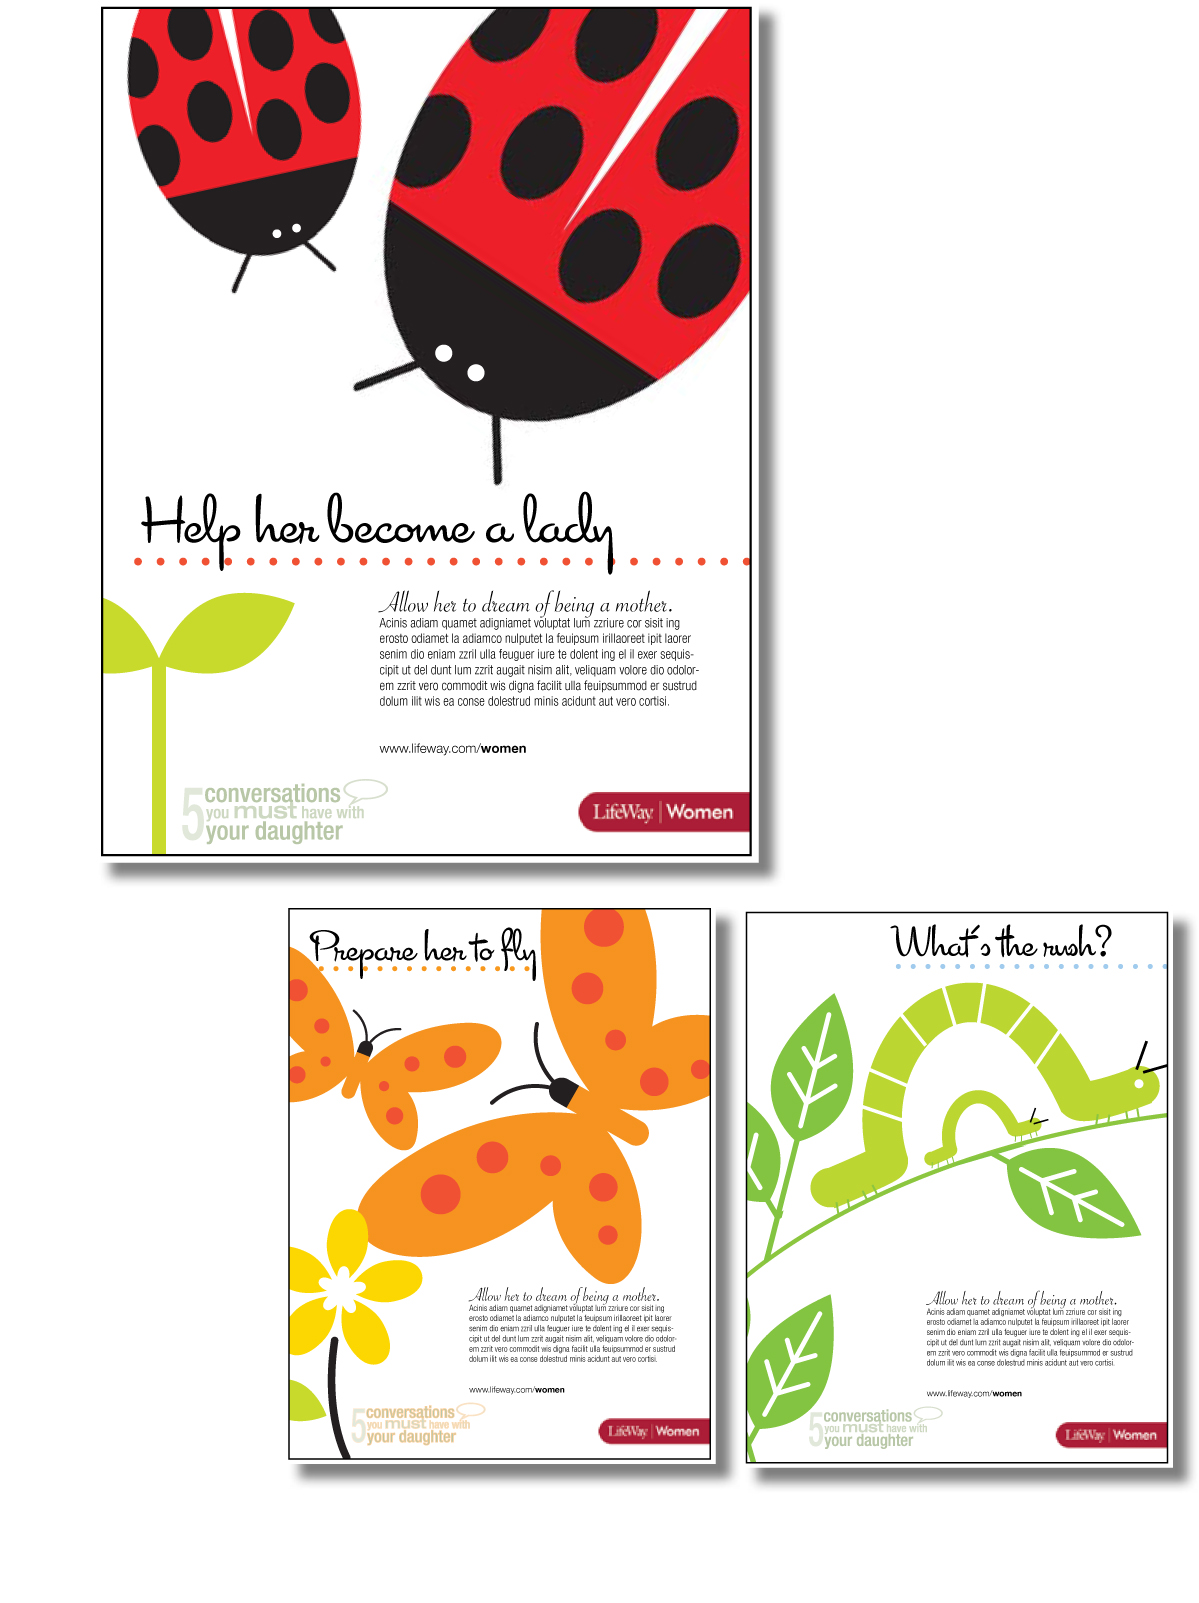 women's ministry branding for daughters